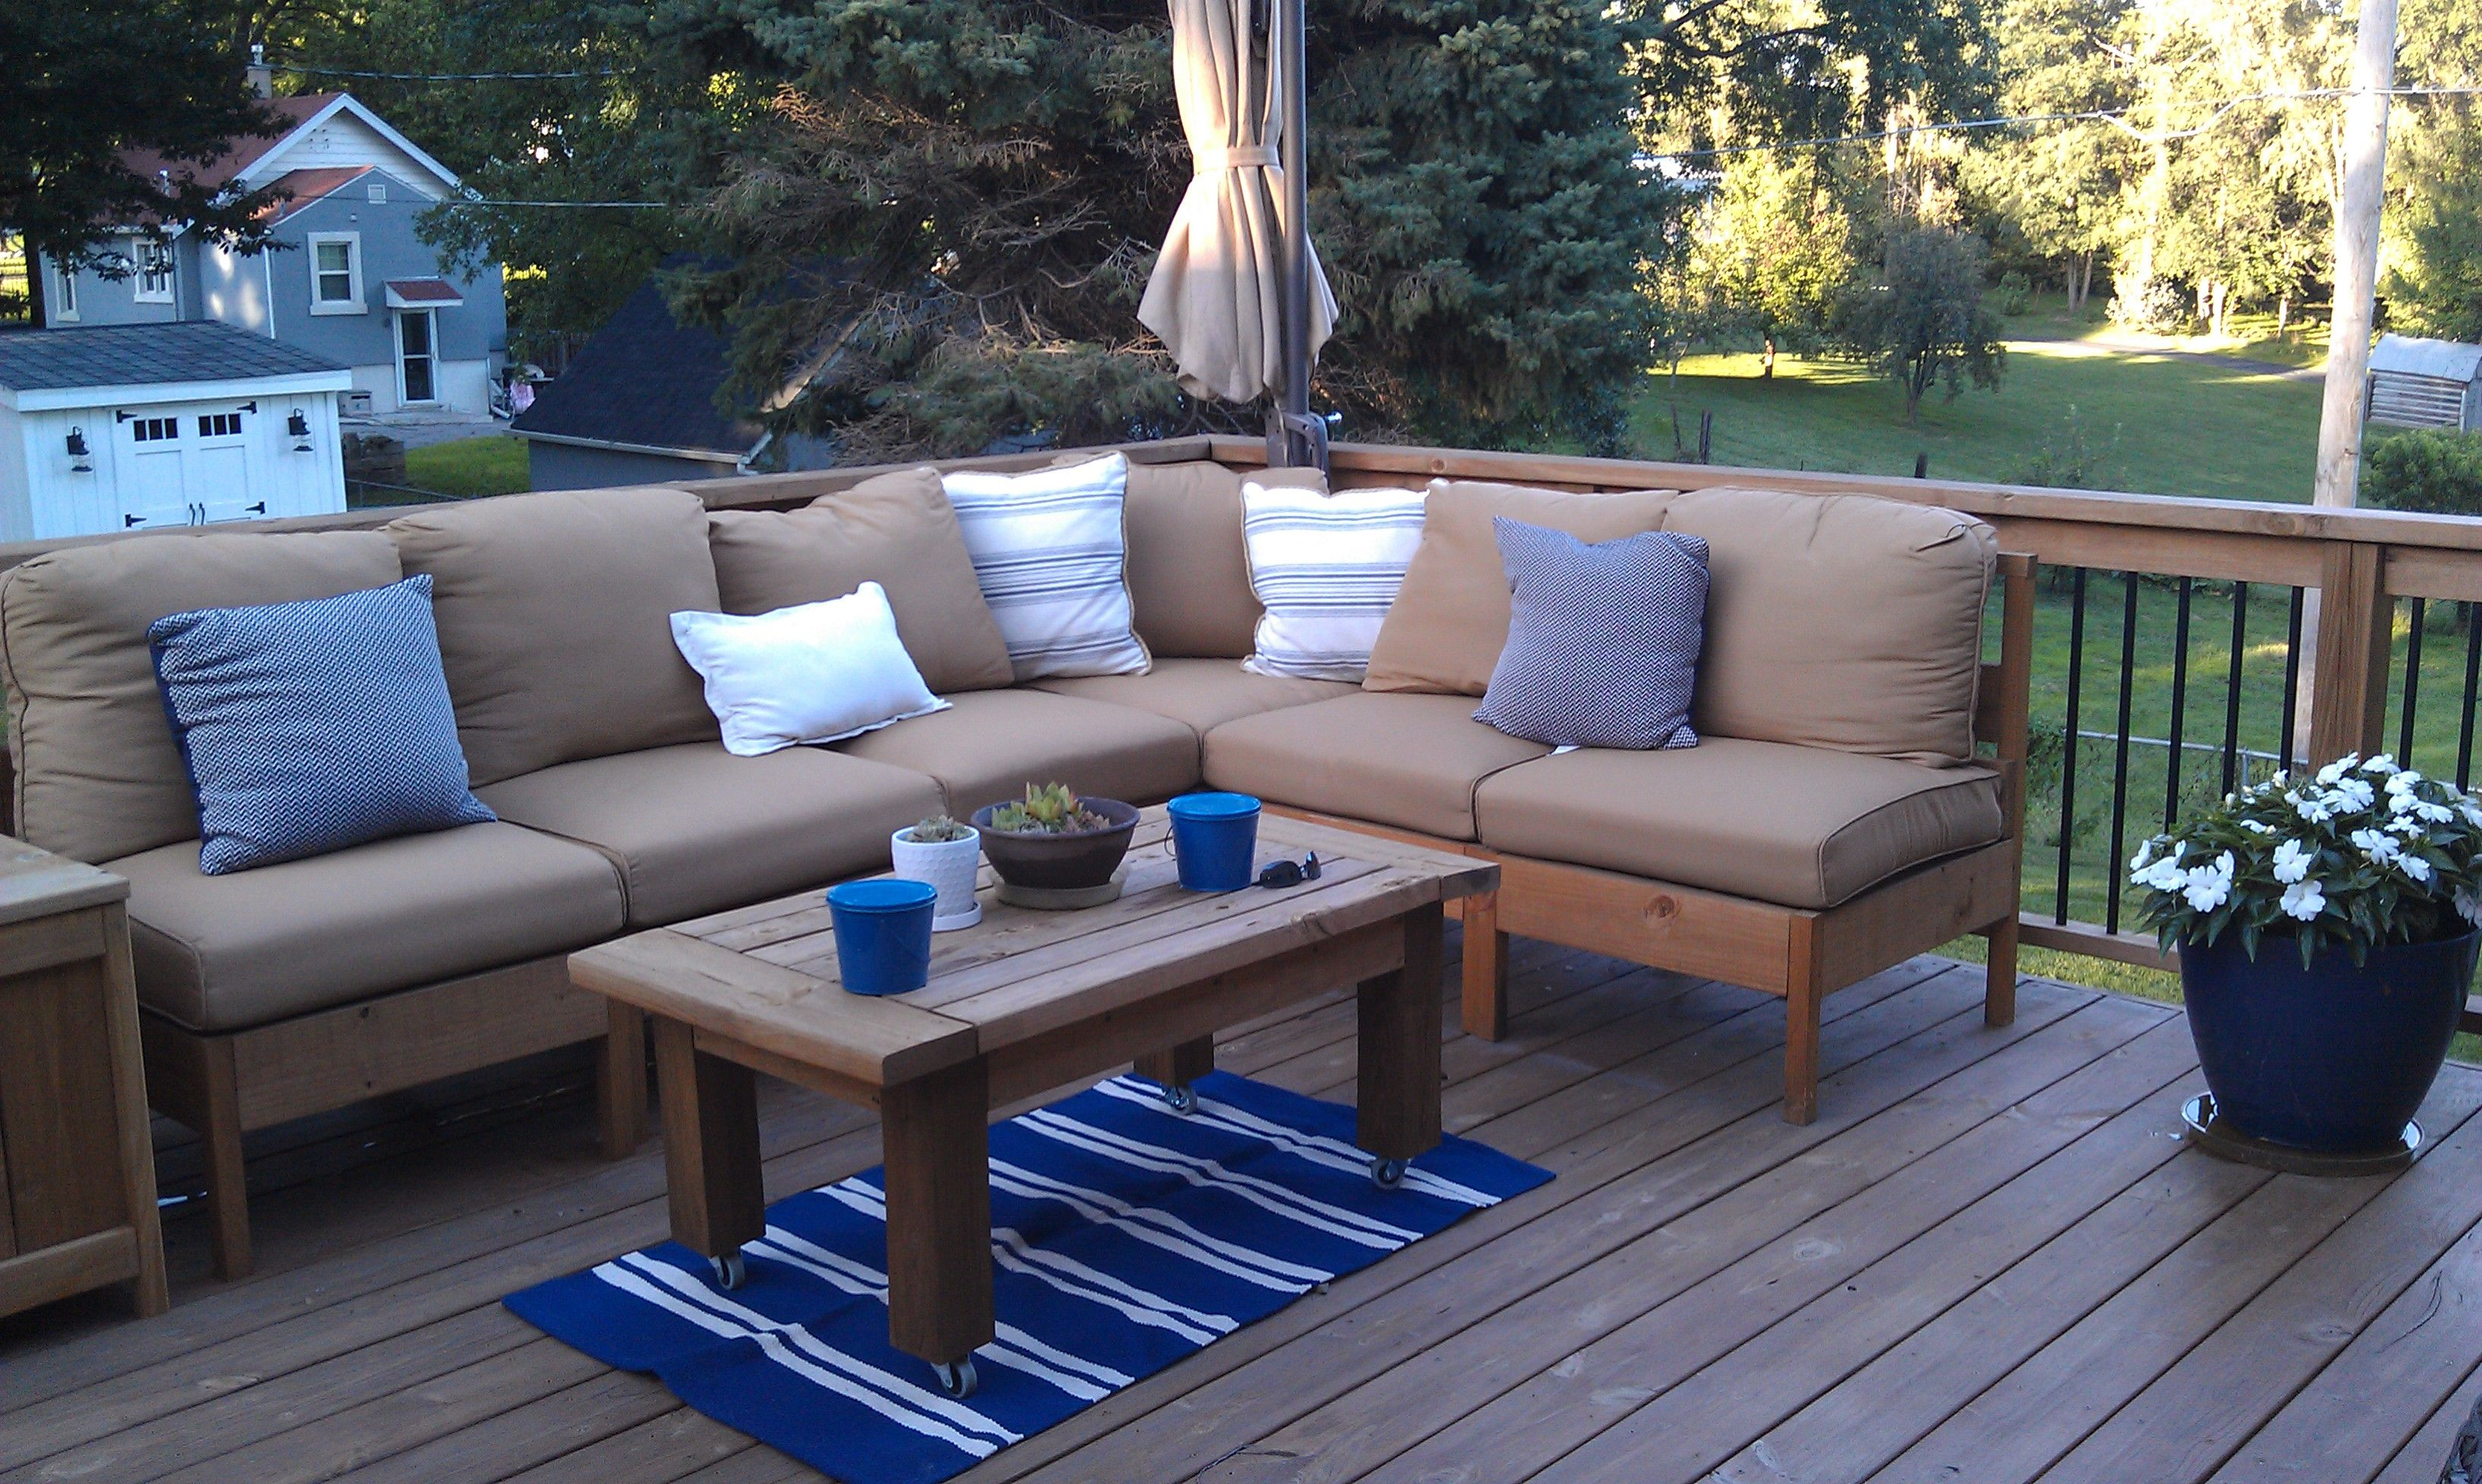 Diy Deck Outdoor Sectional And Table Ana White S Plans 350 With Outdoor Cushions From Menards